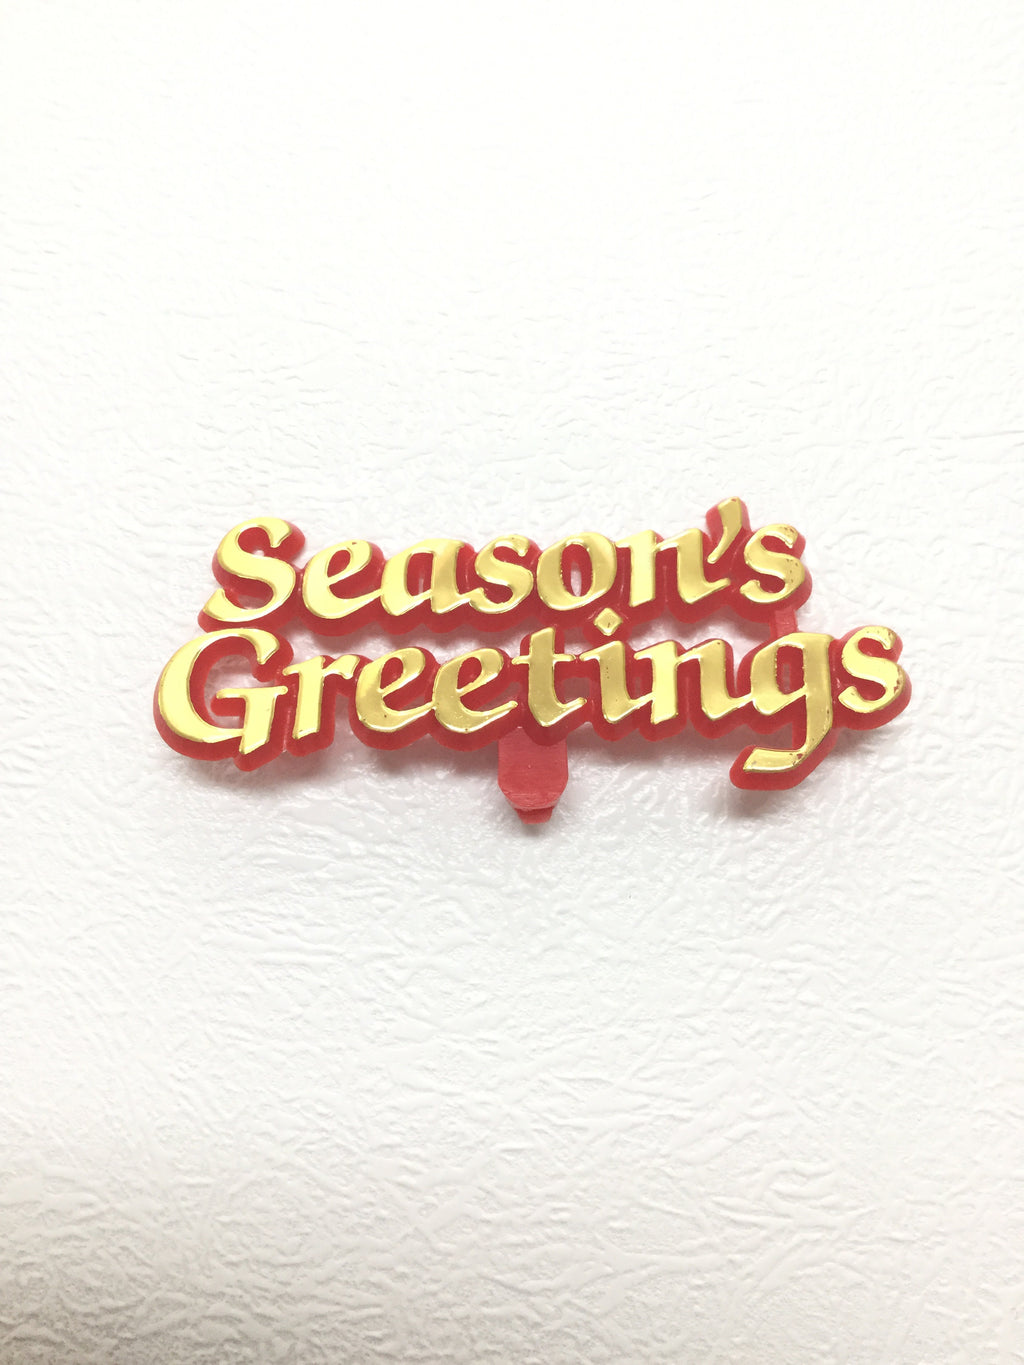 Christmas Cake Topper - Red & Gold Seasons Greetings